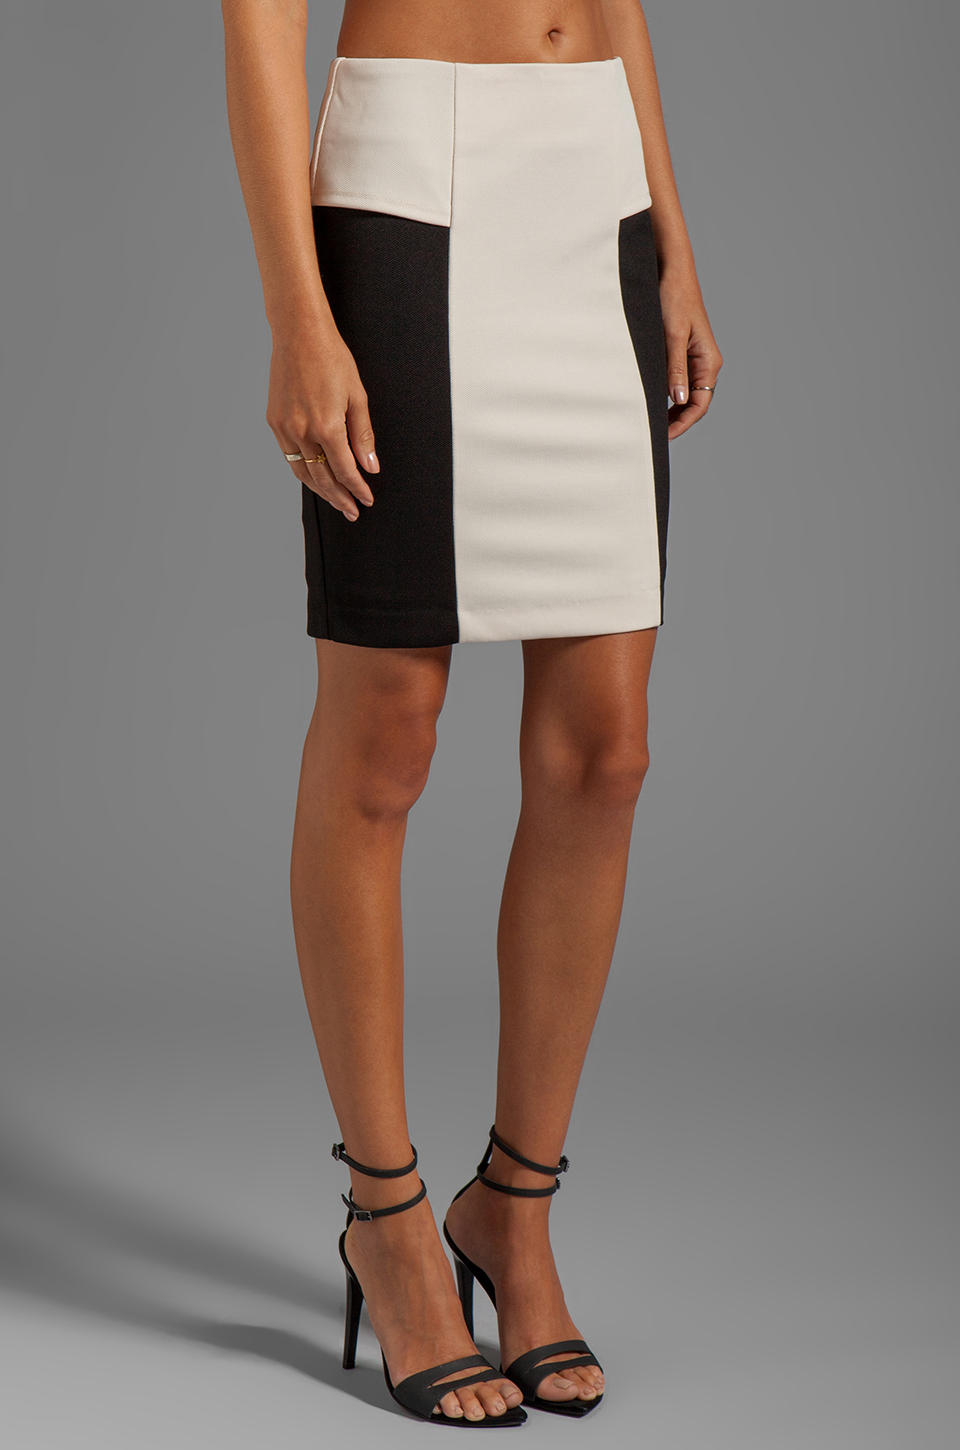 Greylin Angelina Peplum Skirt in Ivory